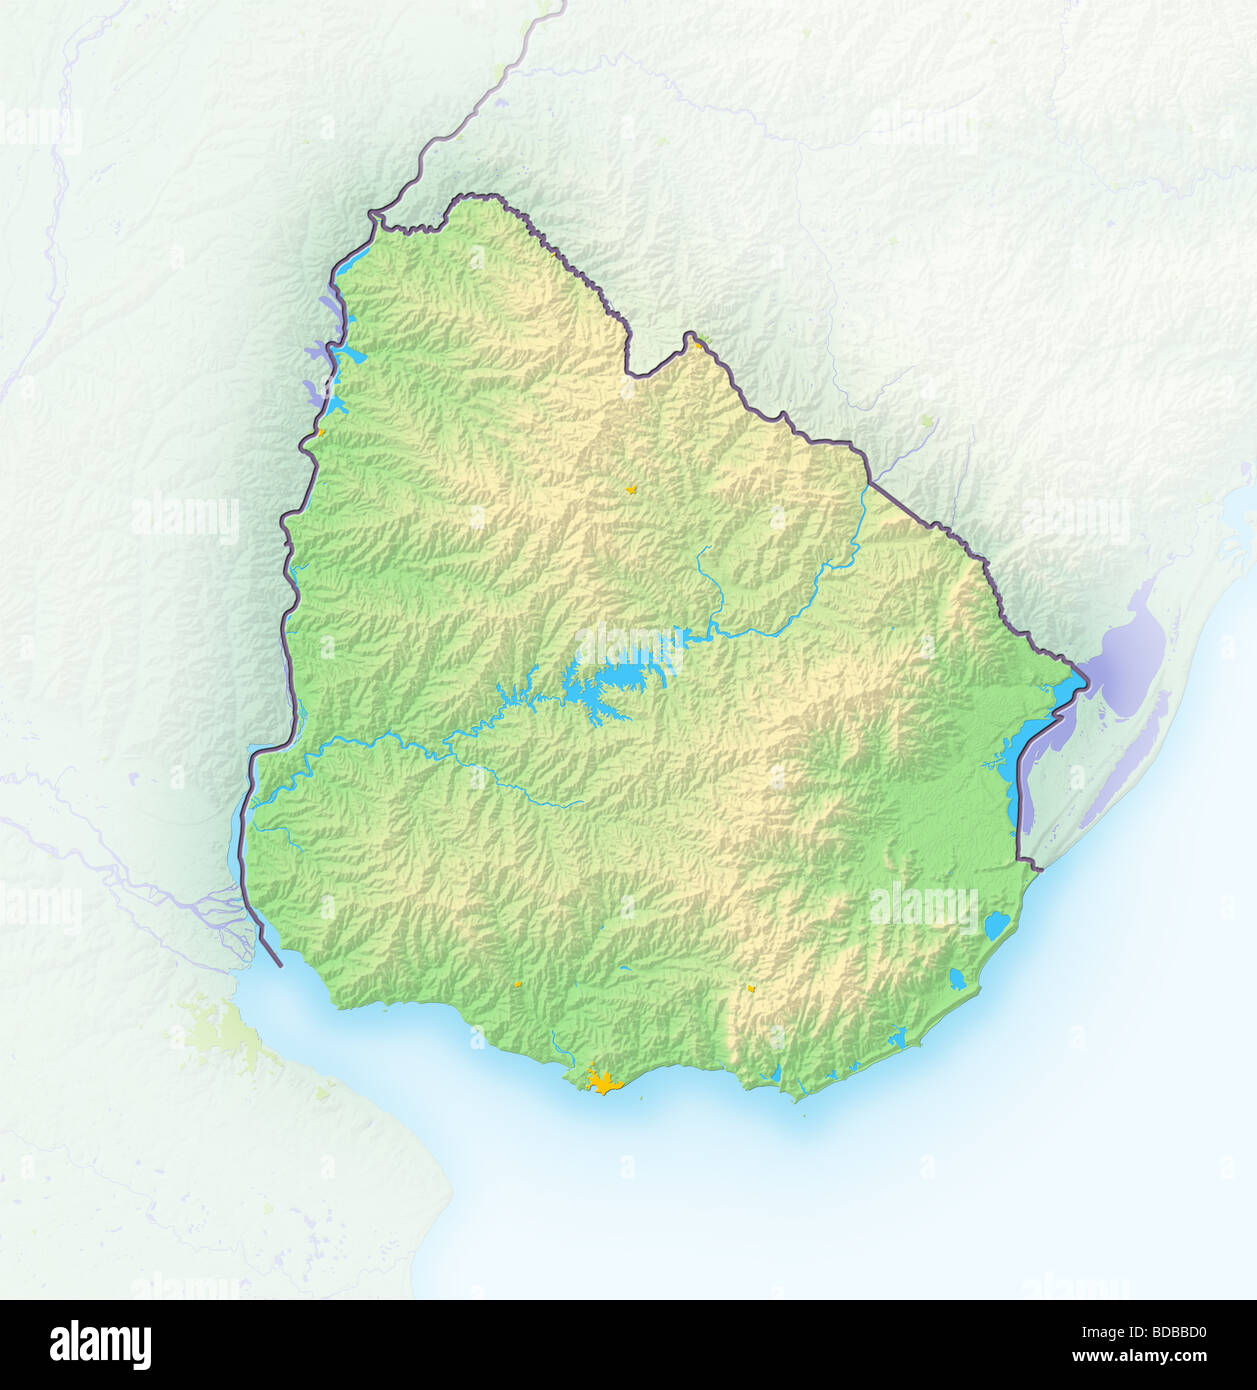 Uruguay Shaded Relief Map Stock Photo Royalty Free Image - Uruguay relief map